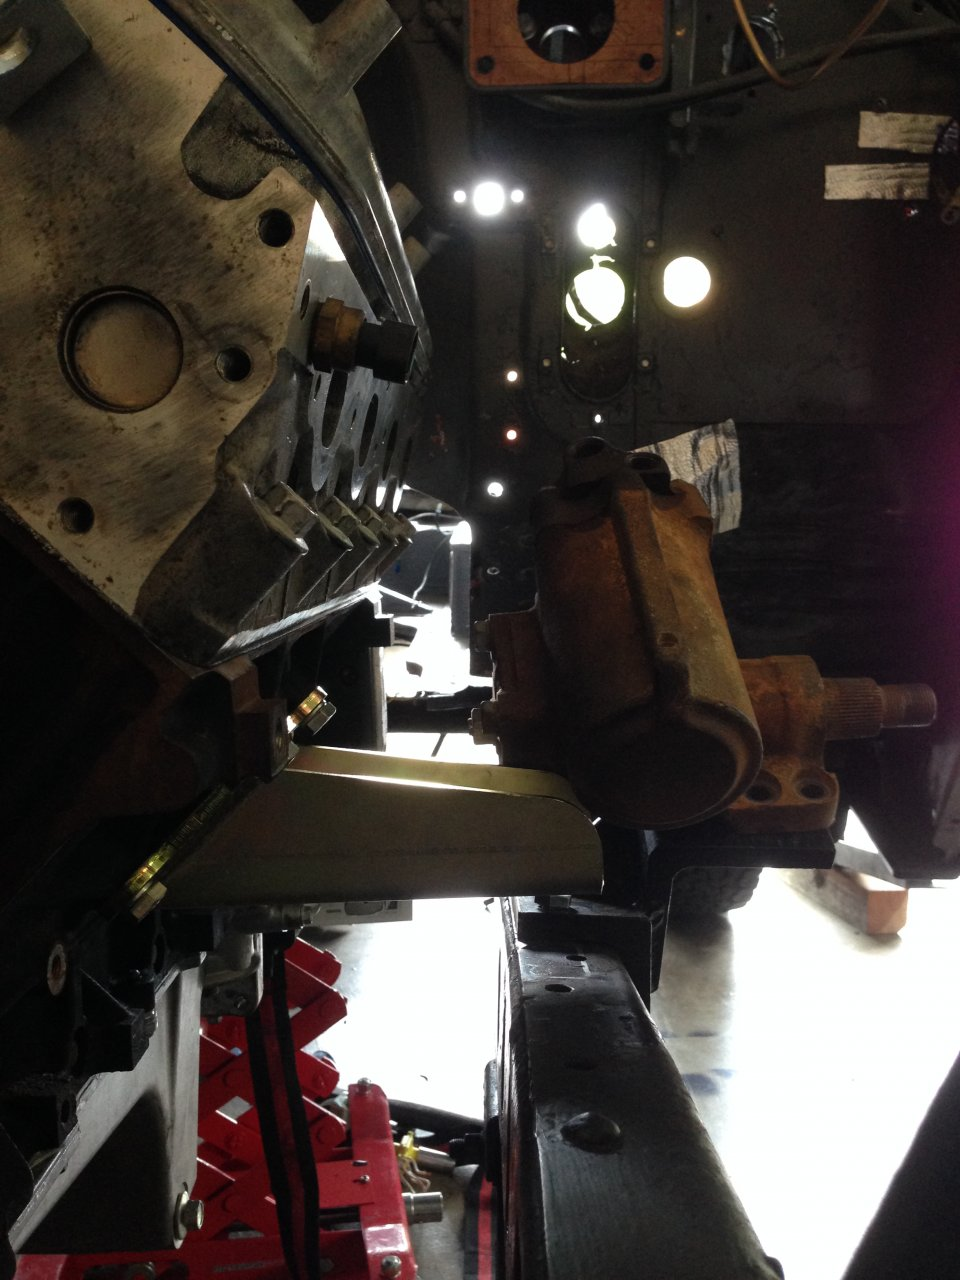 Need header suggestions for LSx FJ40 project | IH8MUD Forum